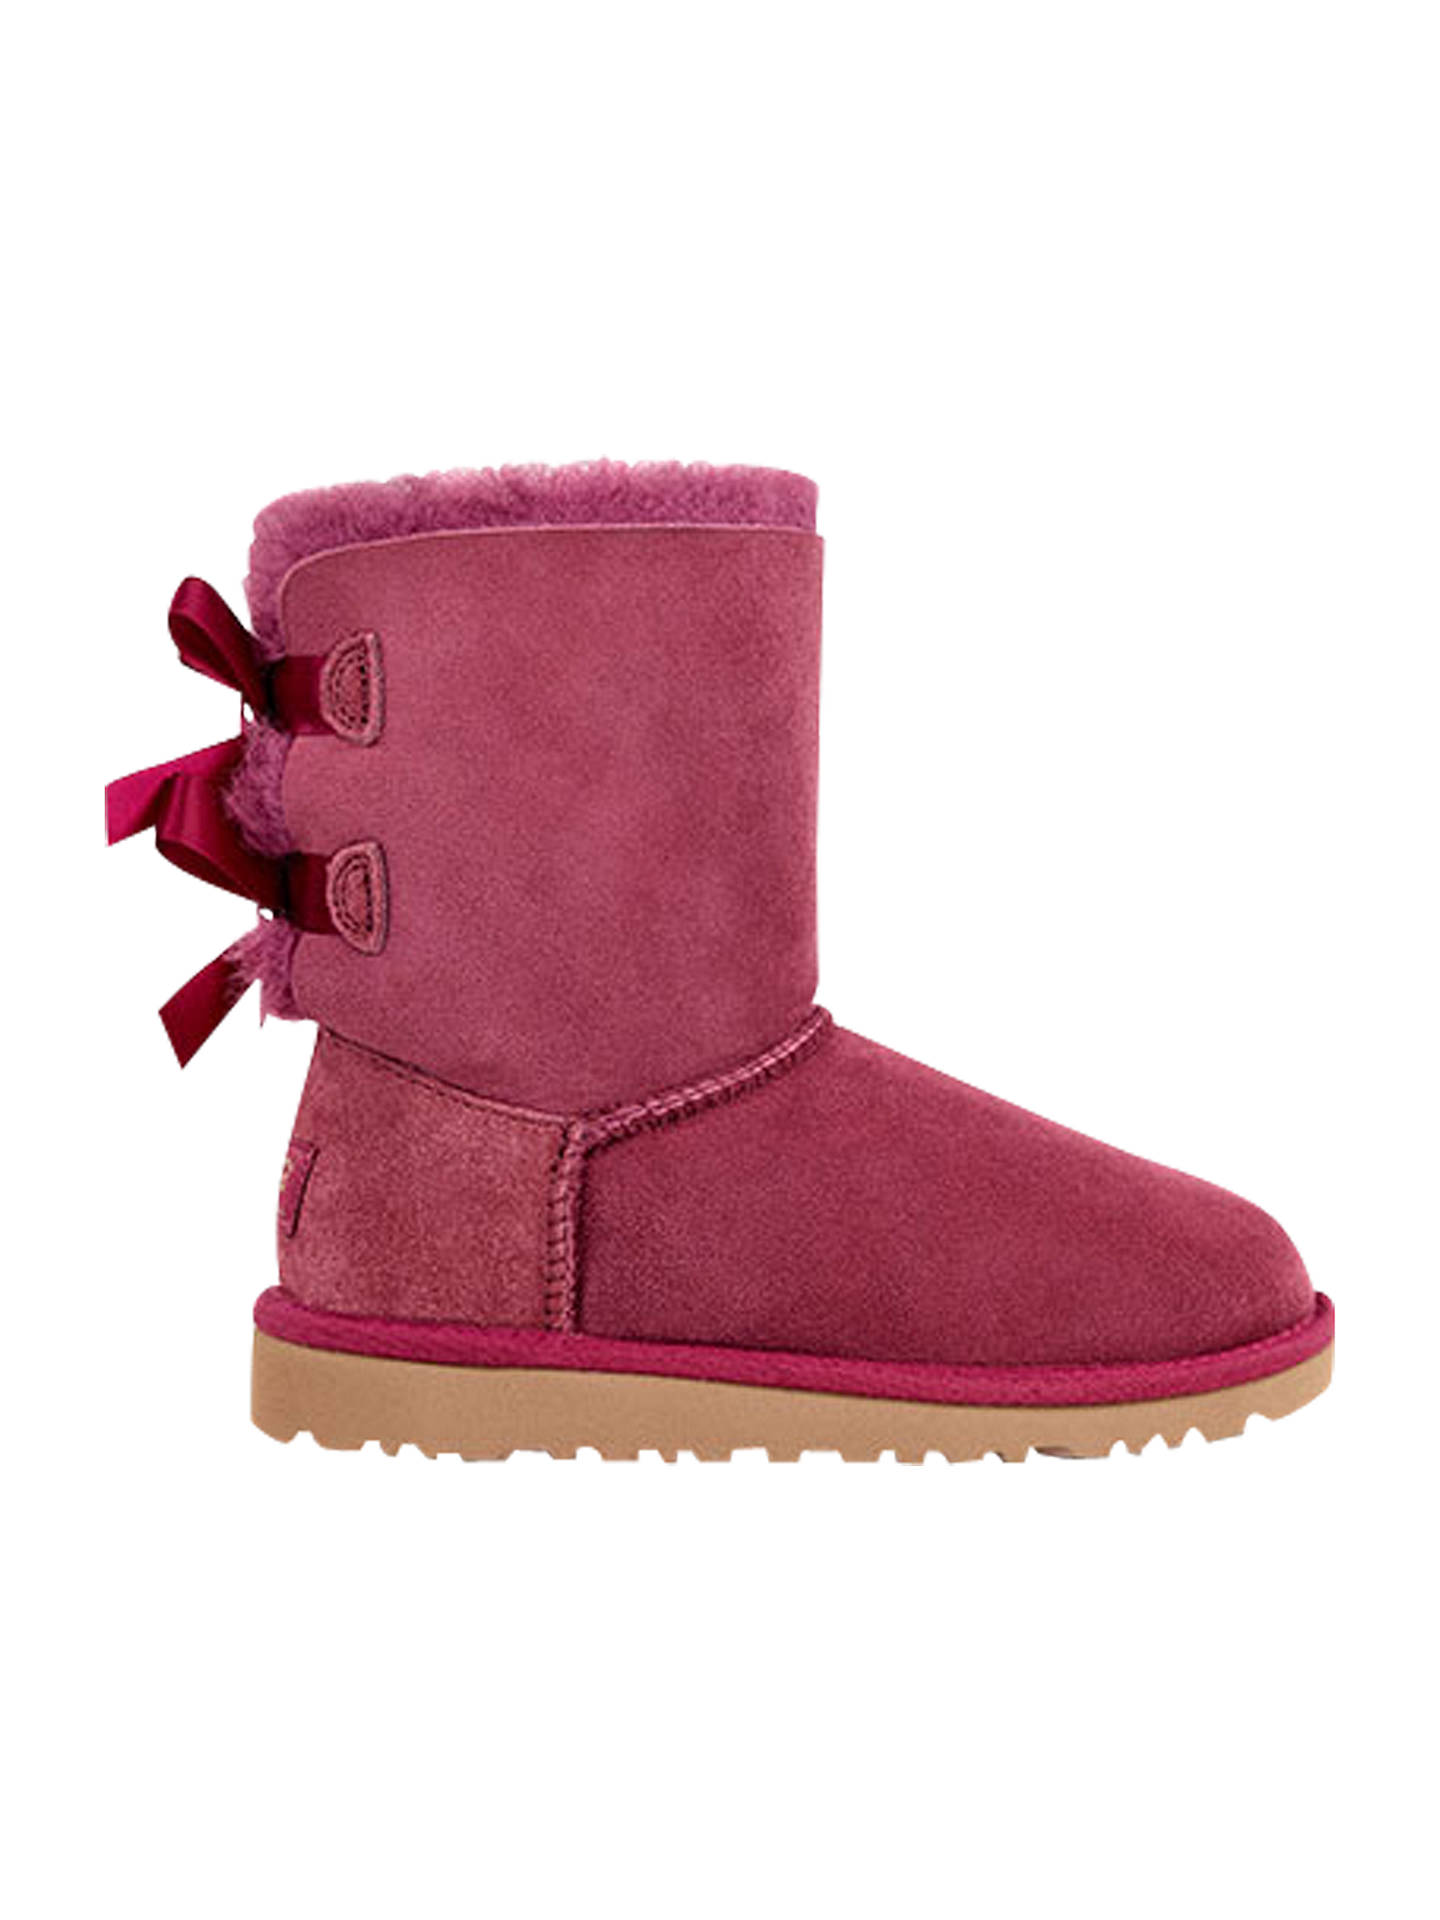 a9e93195f40 UGG Children's Bailey Bow Boots, Bougainvillea at John Lewis & Partners